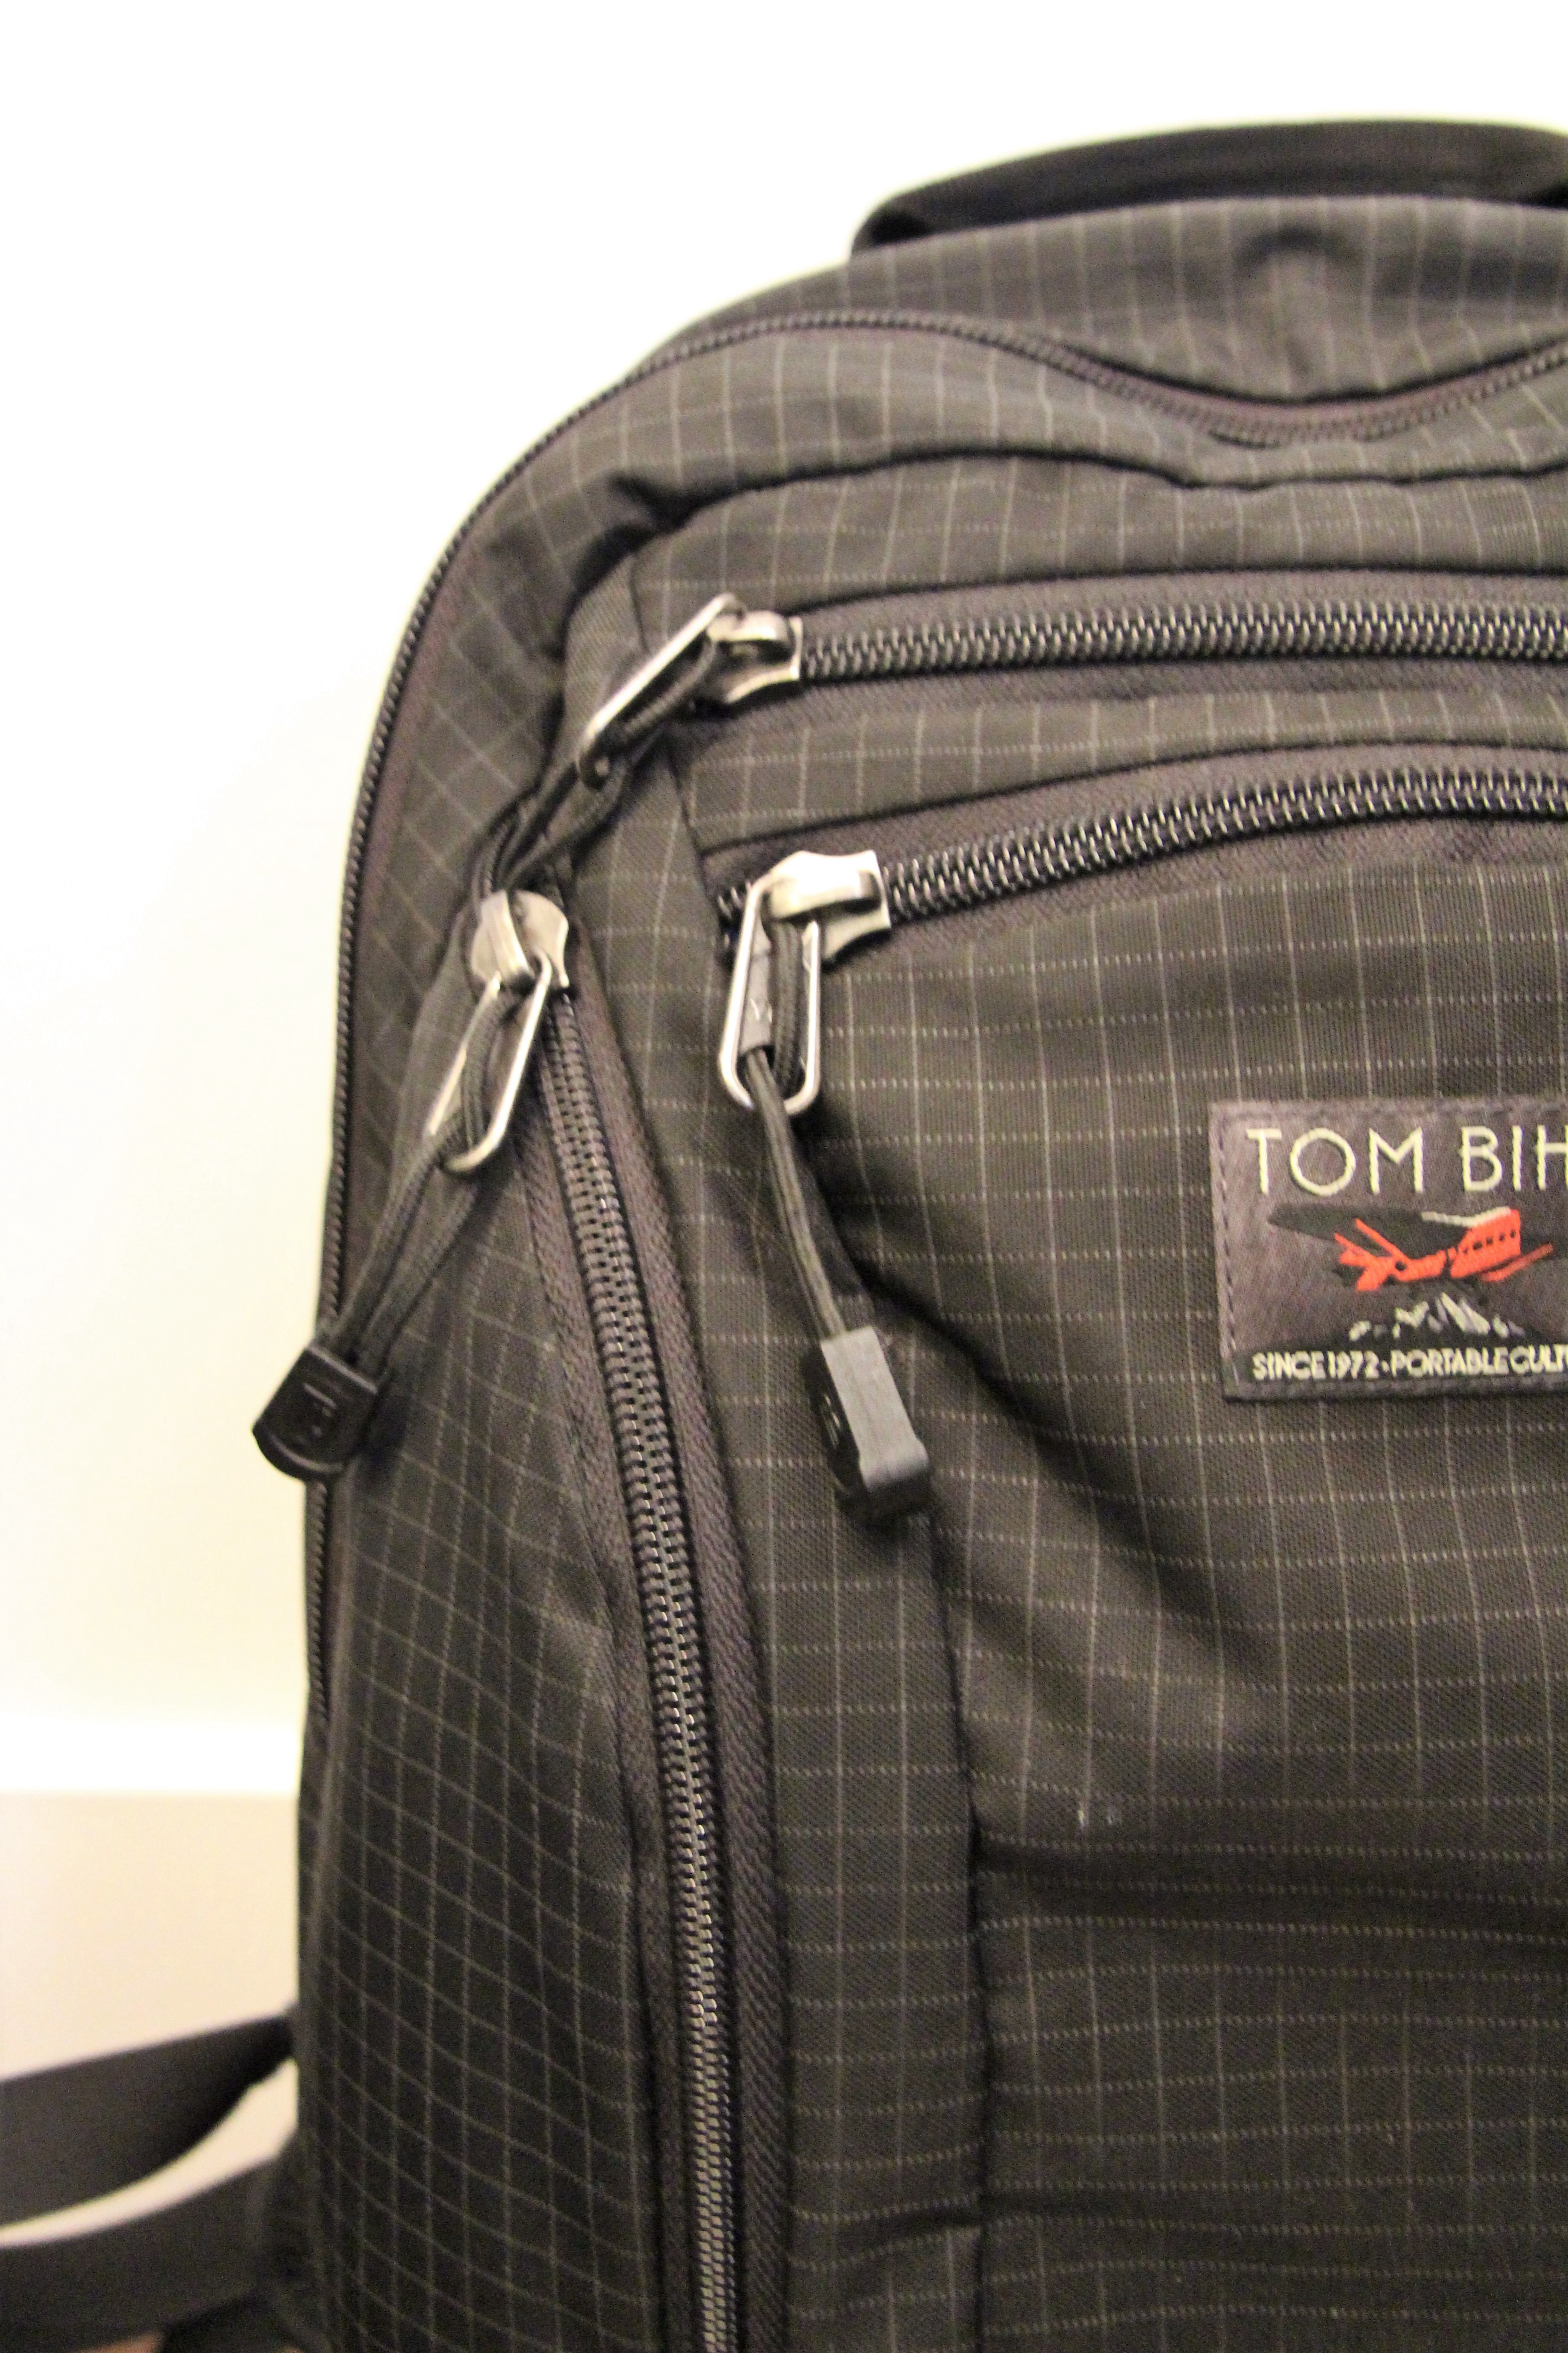 Tom Bihn Synapse 19 — Comprehensive Review - Pangolins with